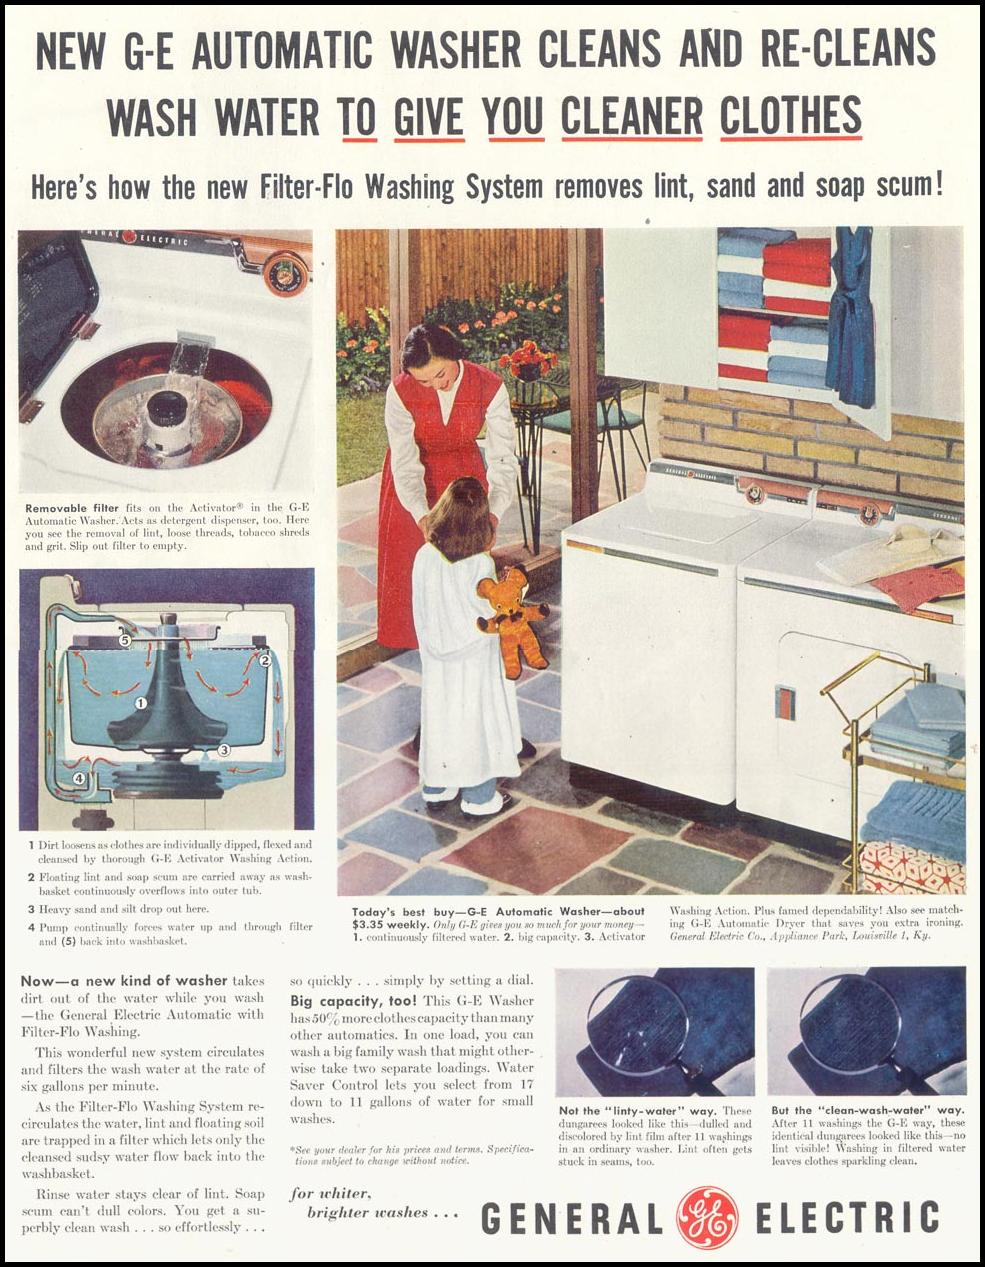 GENERAL ELECTRIC AUTOMATIC WASHER